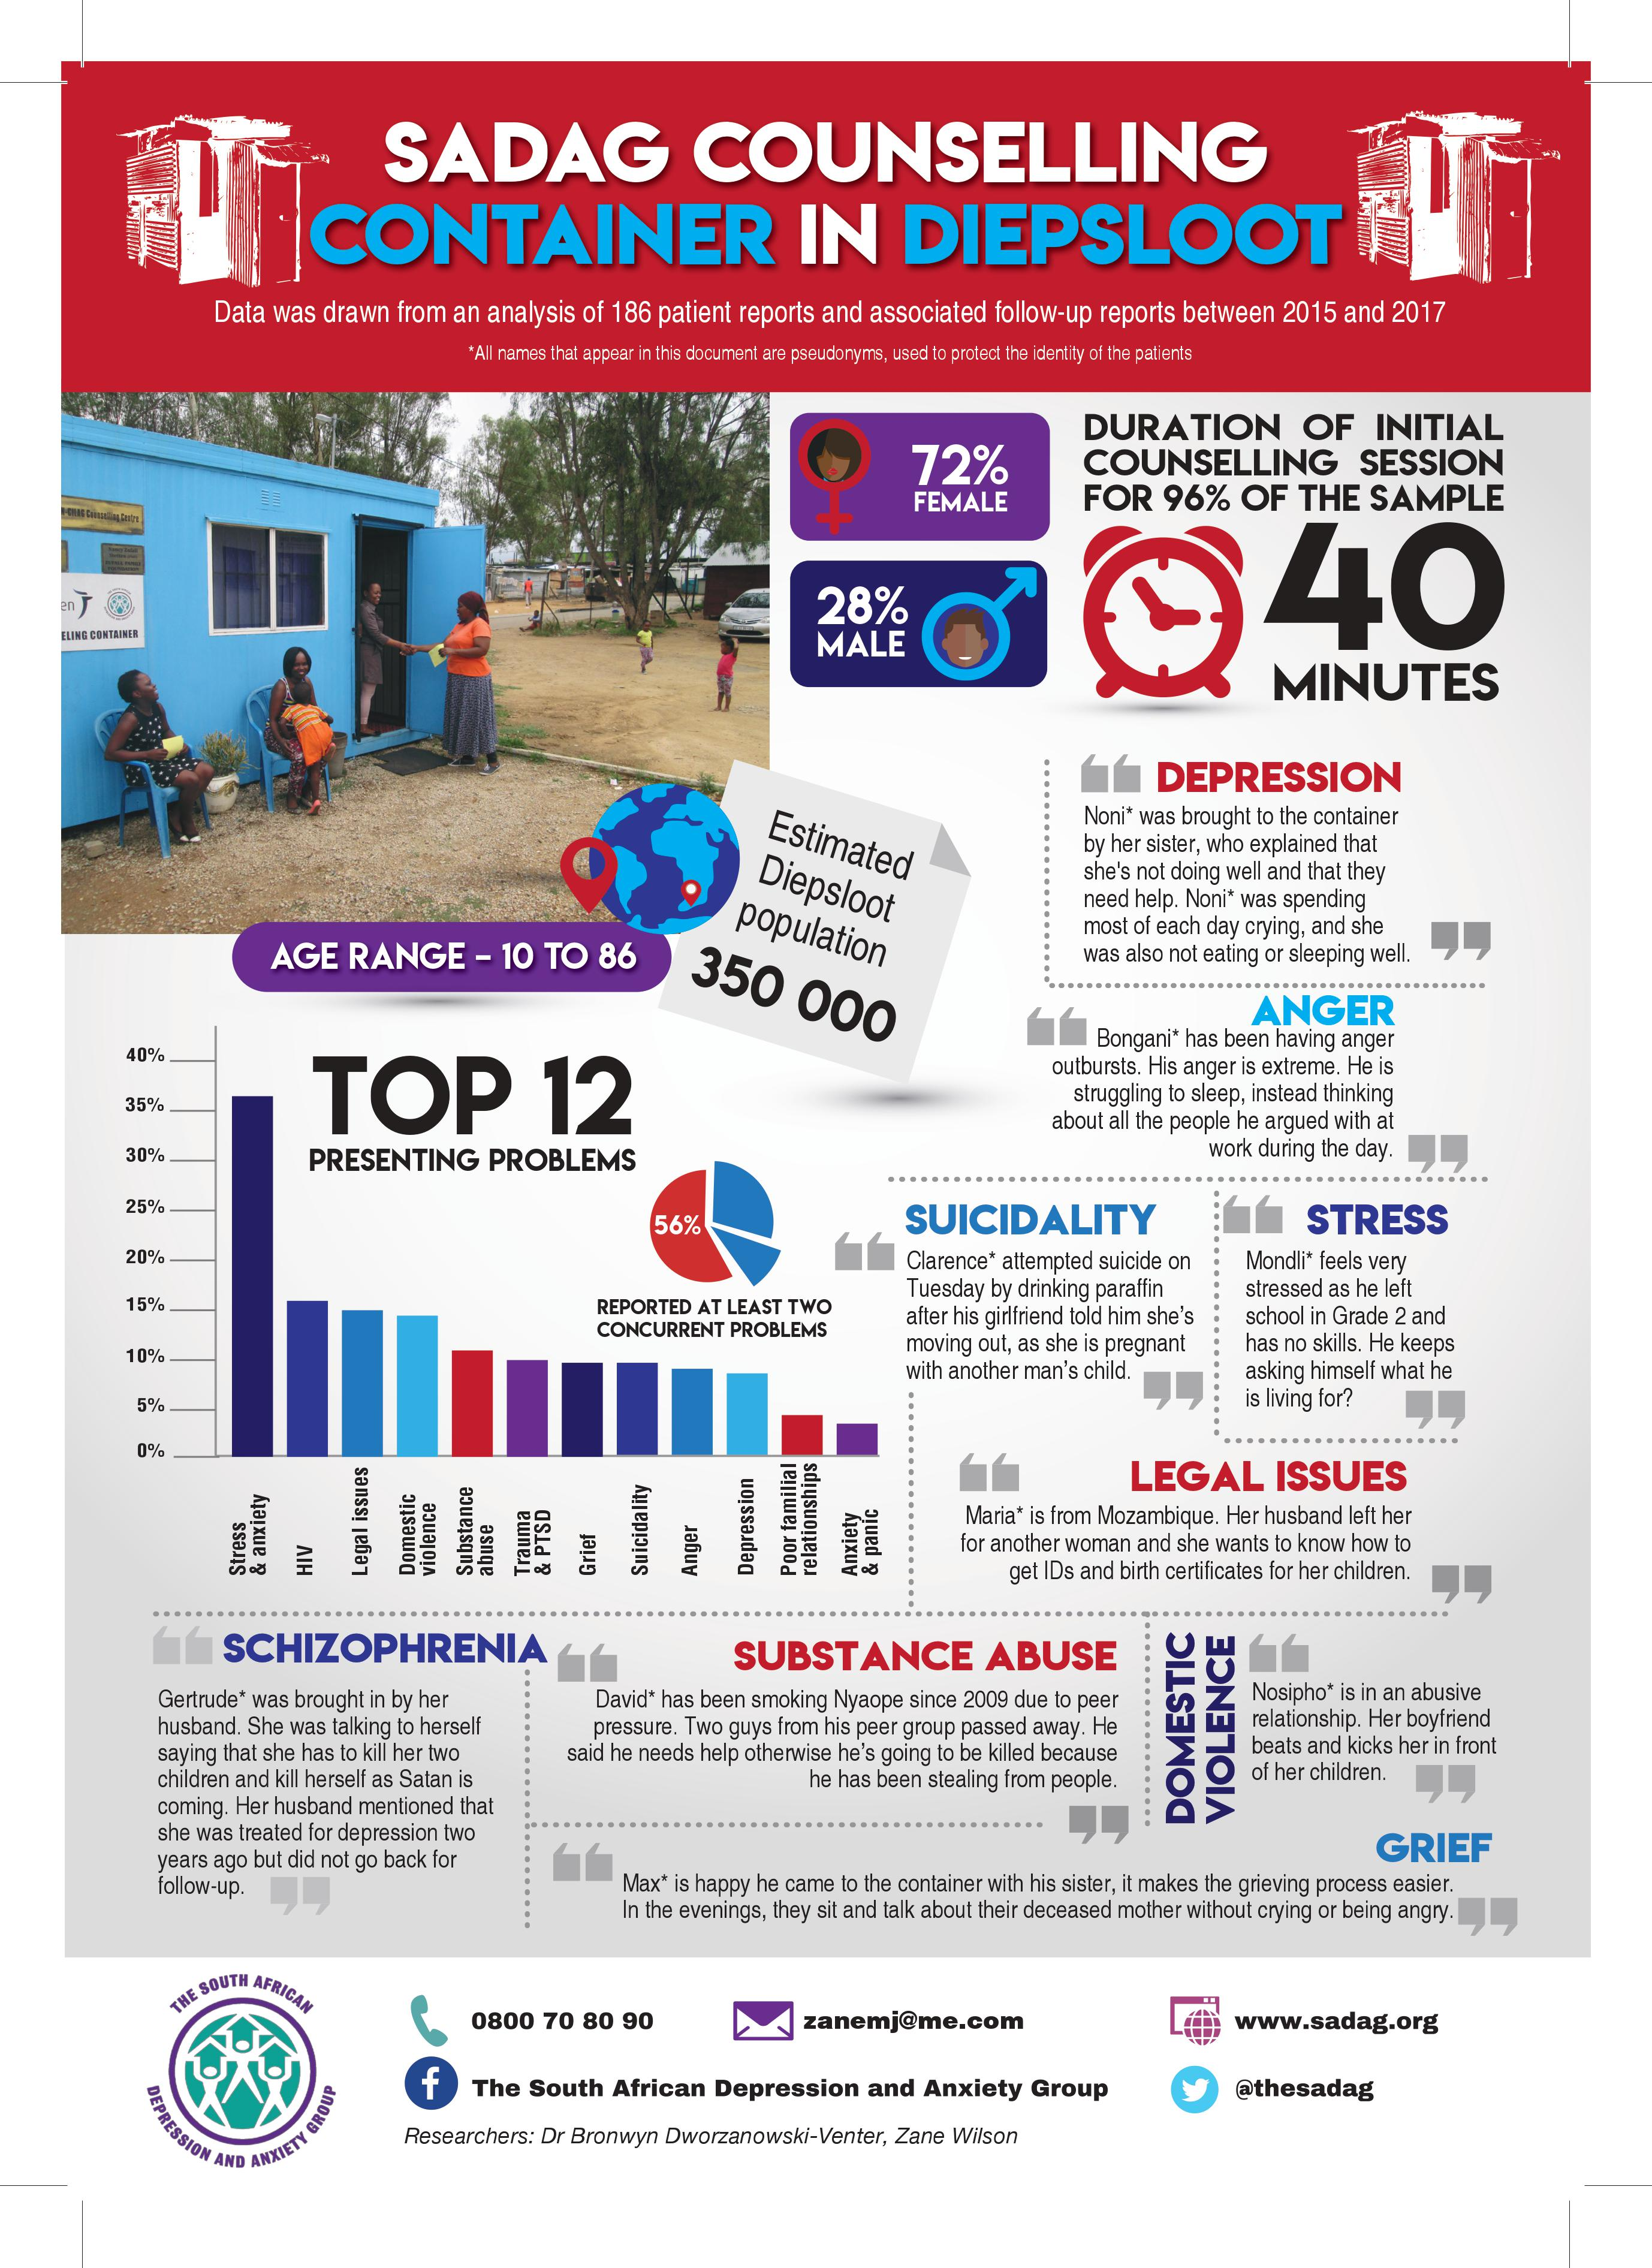 Sadag Diepsloot Infographic Version A images 1